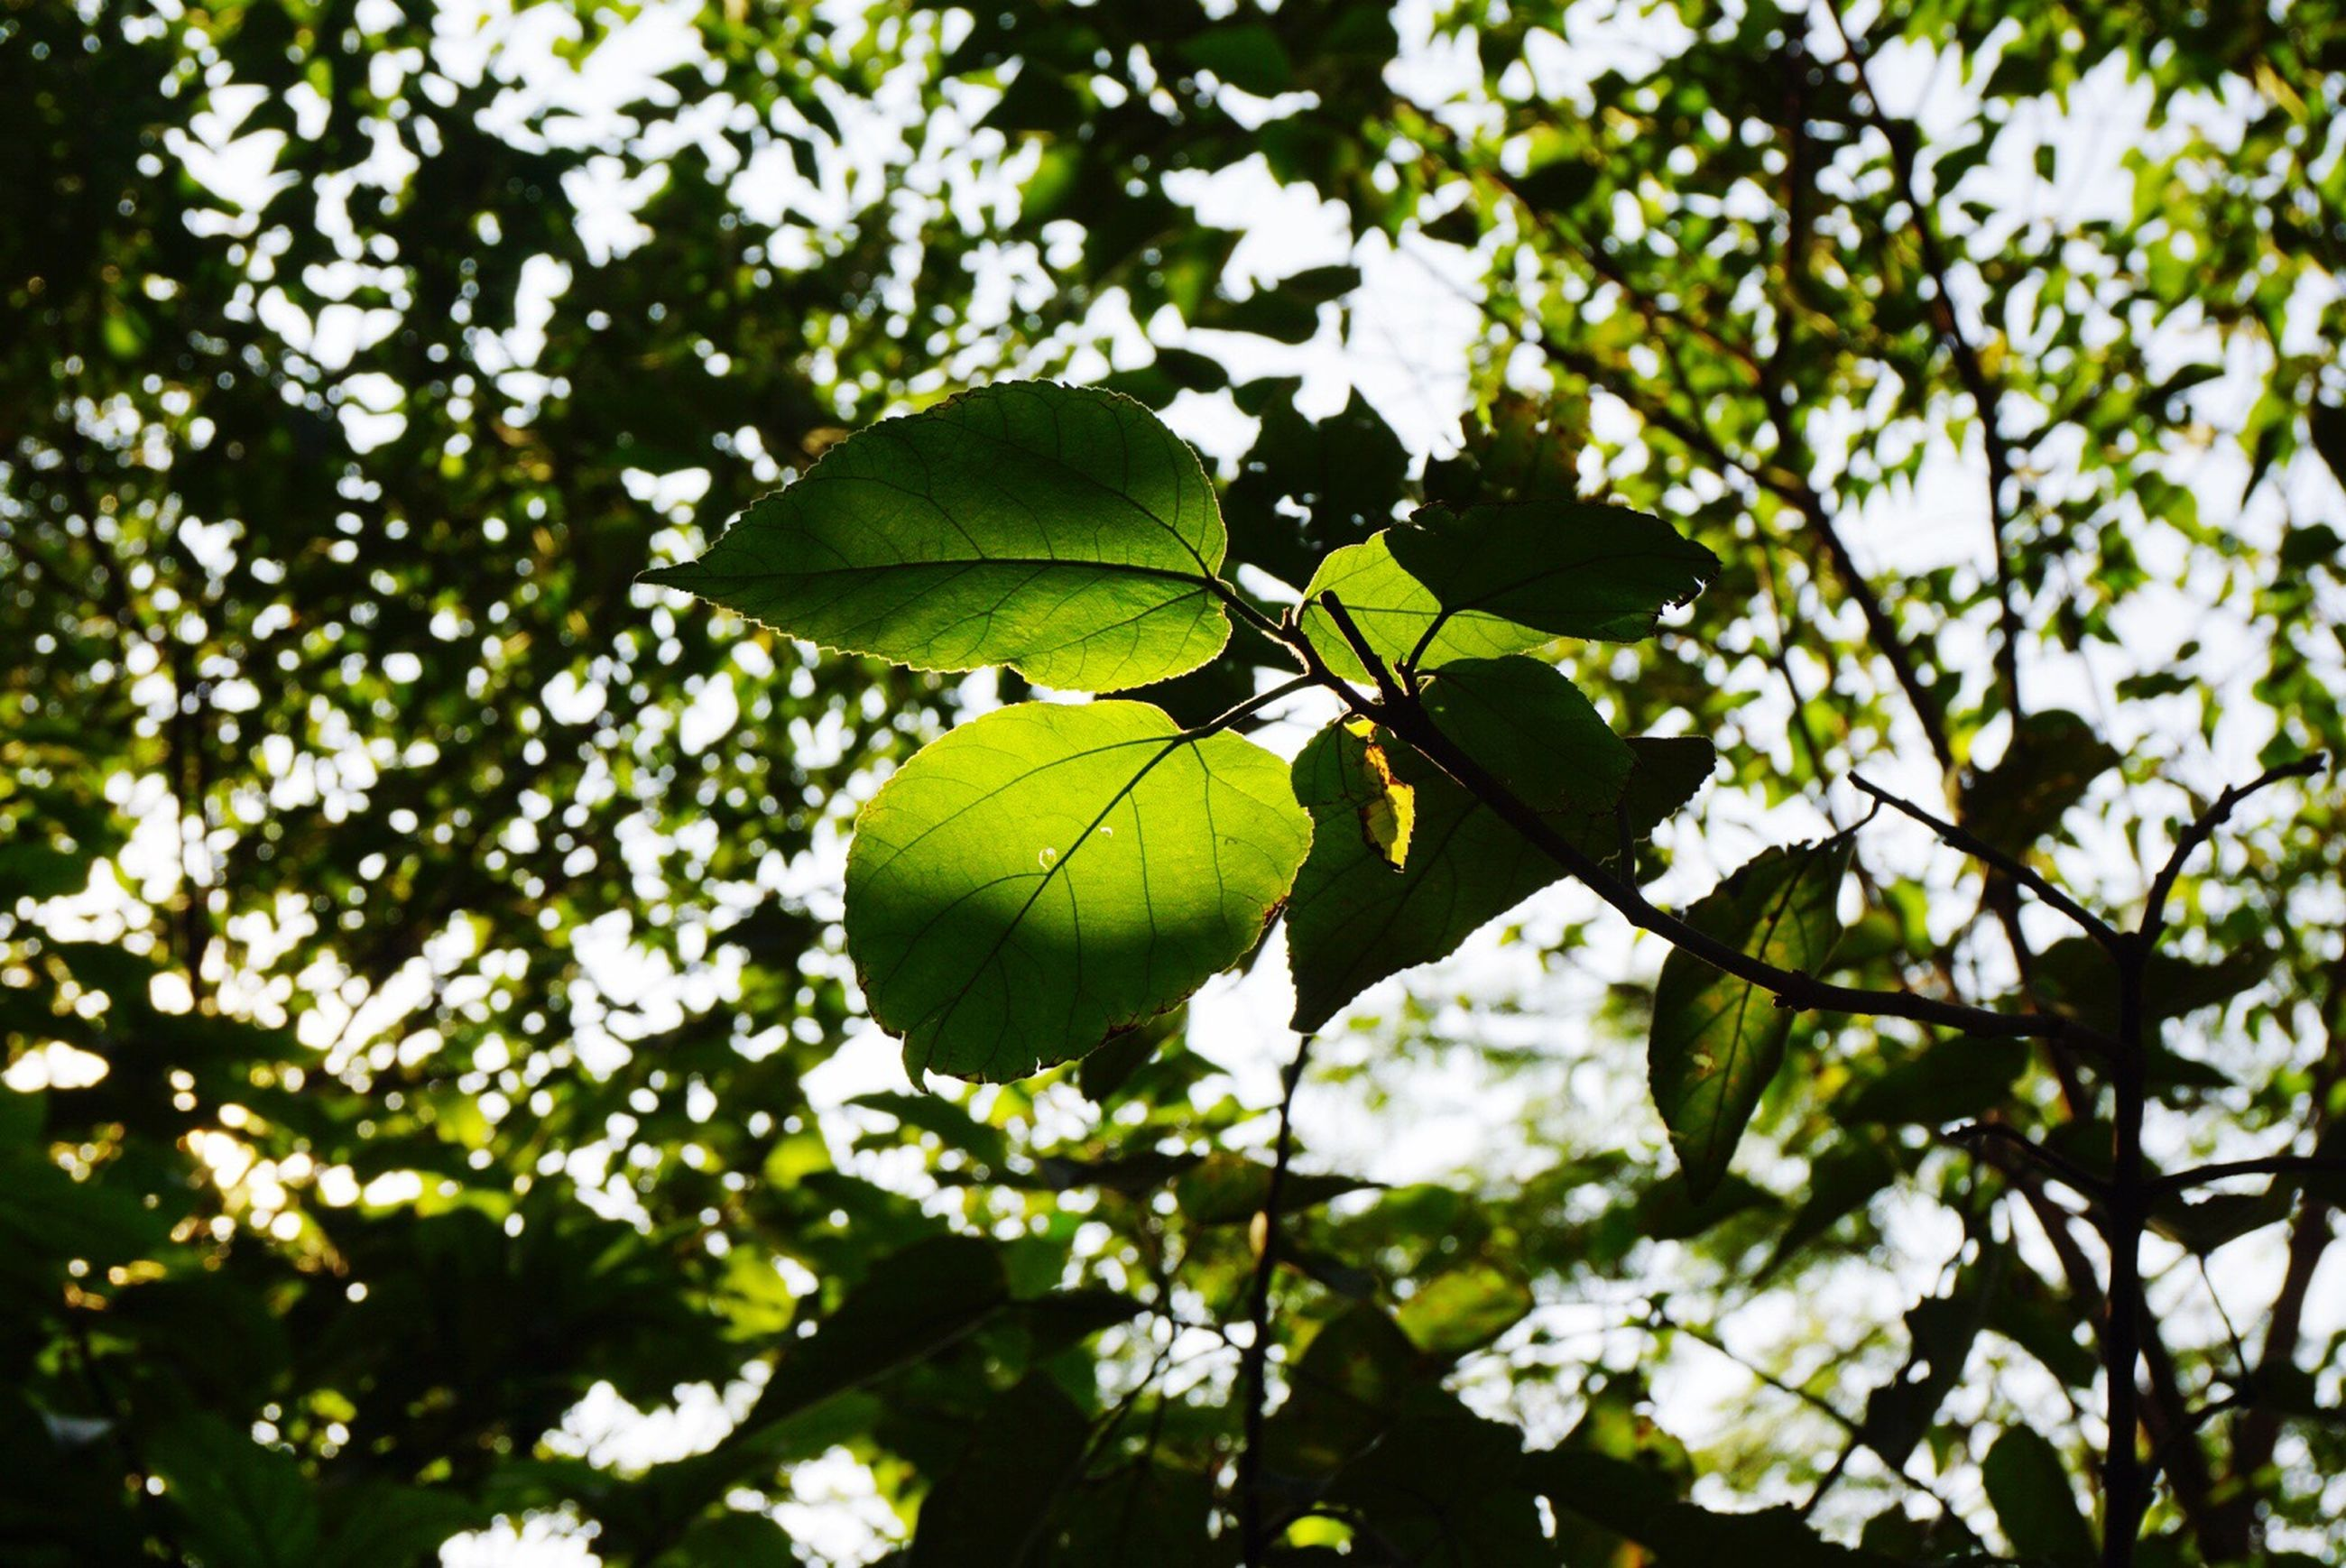 leaf, growth, tree, branch, green color, low angle view, nature, close-up, focus on foreground, leaves, leaf vein, beauty in nature, tranquility, day, outdoors, sunlight, no people, plant, green, twig